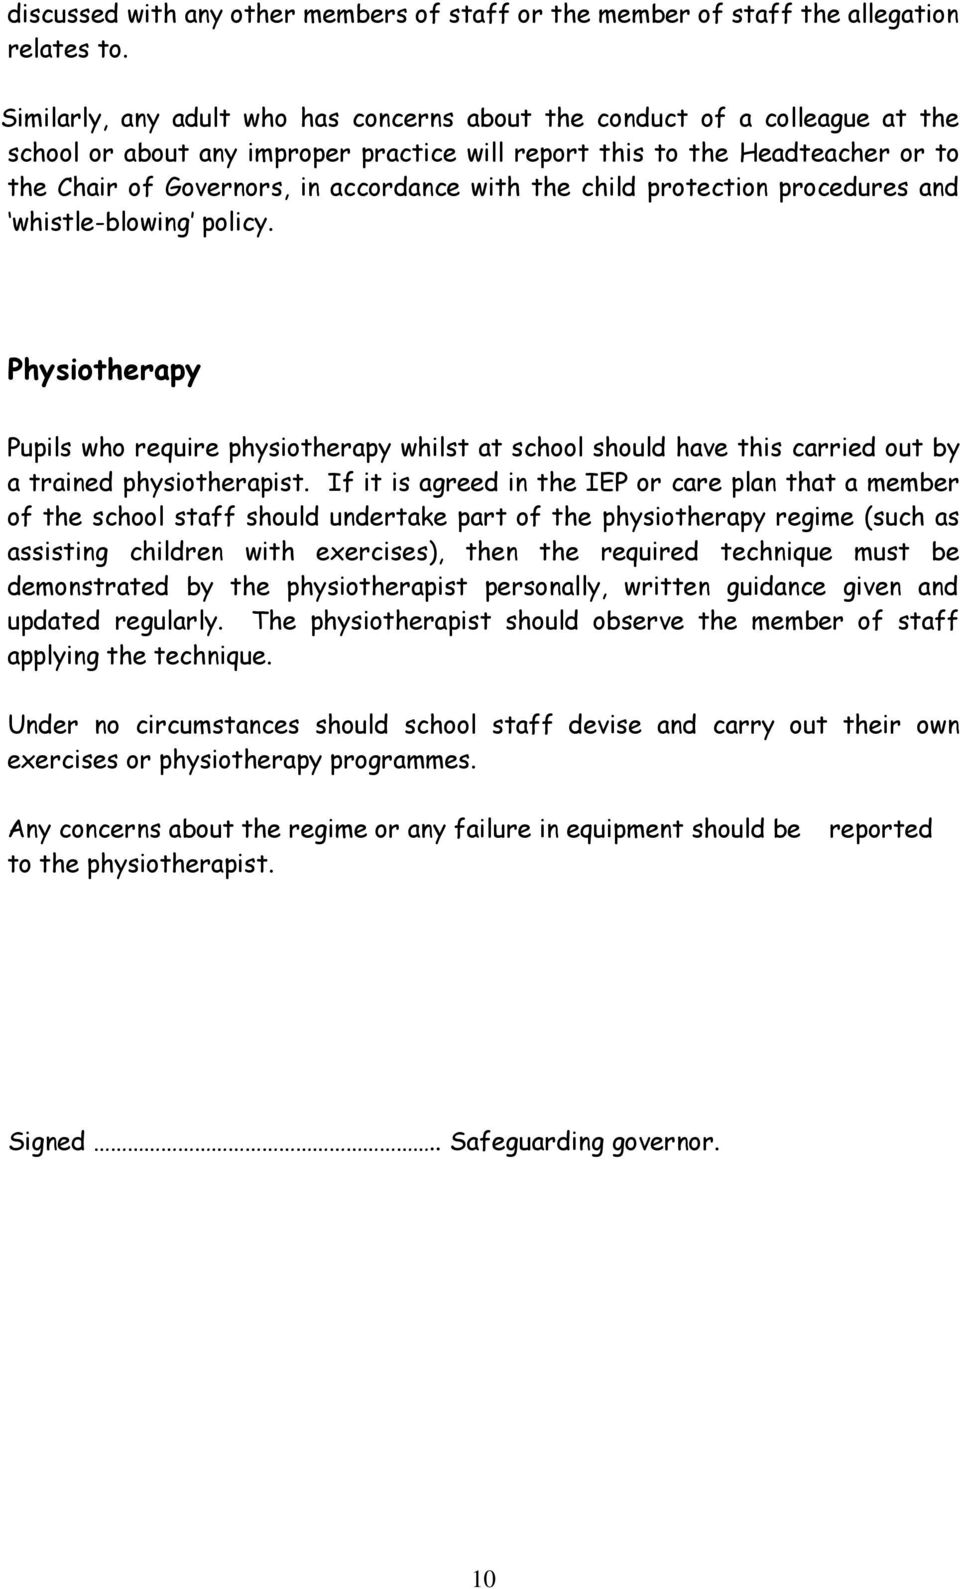 with the child protection procedures and whistle-blowing policy. Physiotherapy Pupils who require physiotherapy whilst at school should have this carried out by a trained physiotherapist.